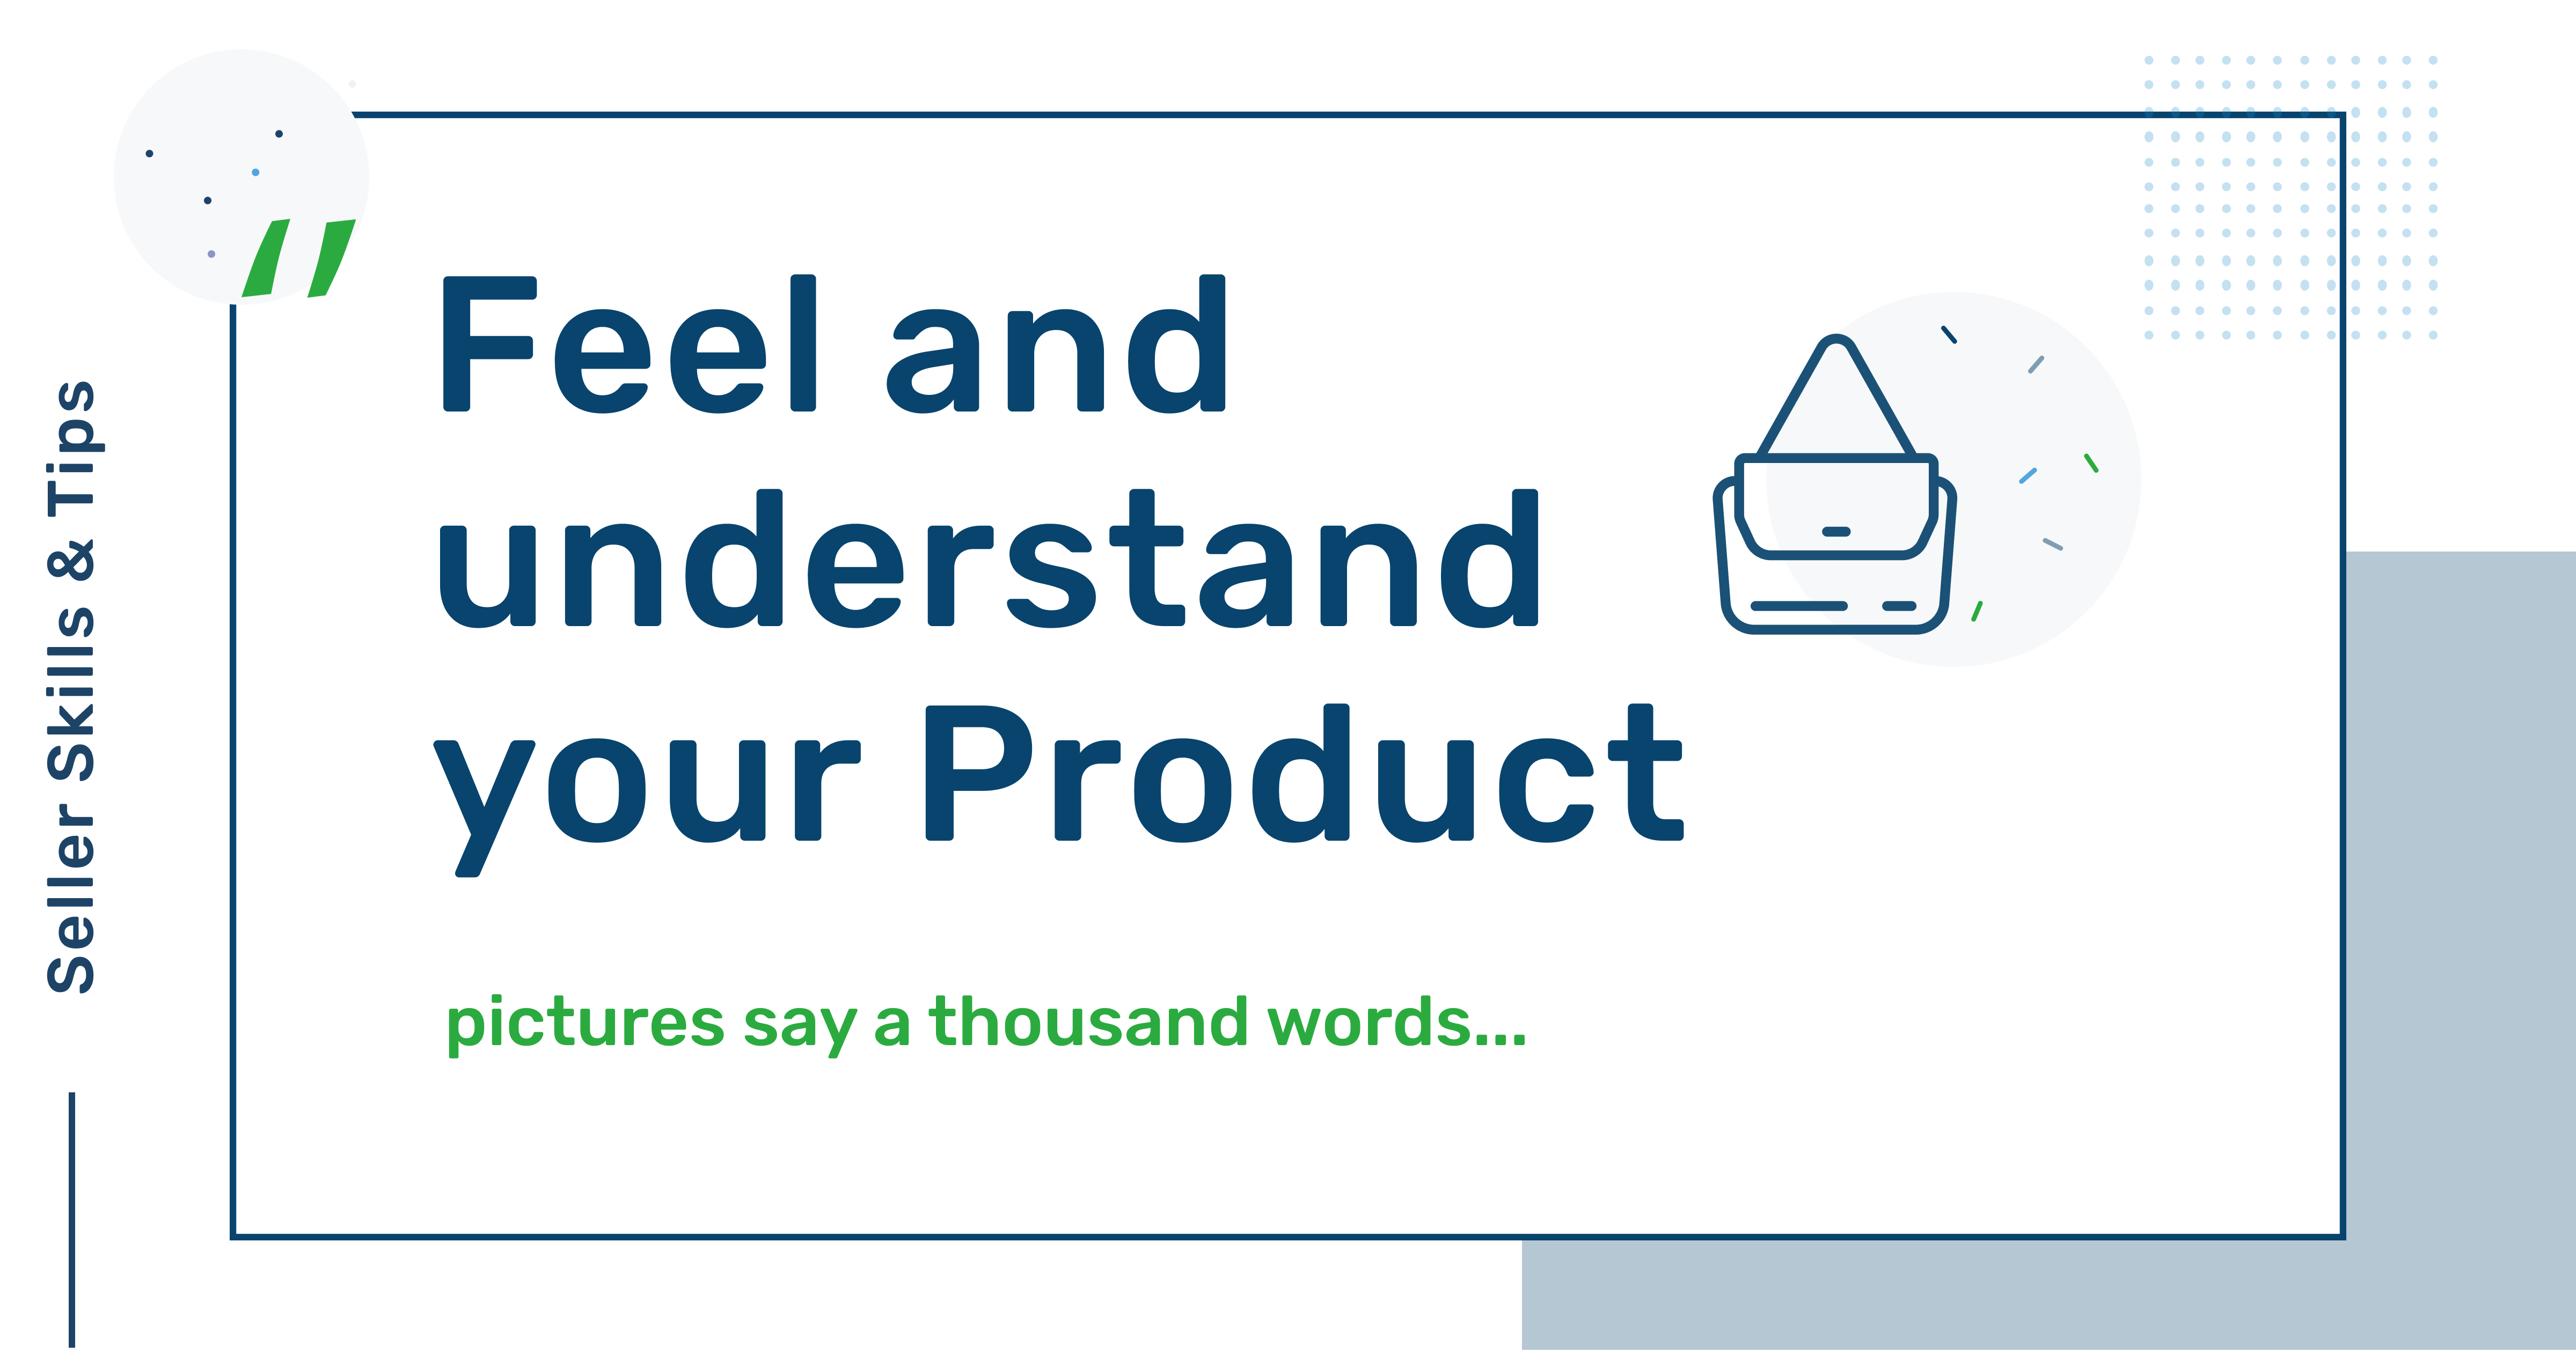 eCommerce Seller Hero: Feel and understand your product